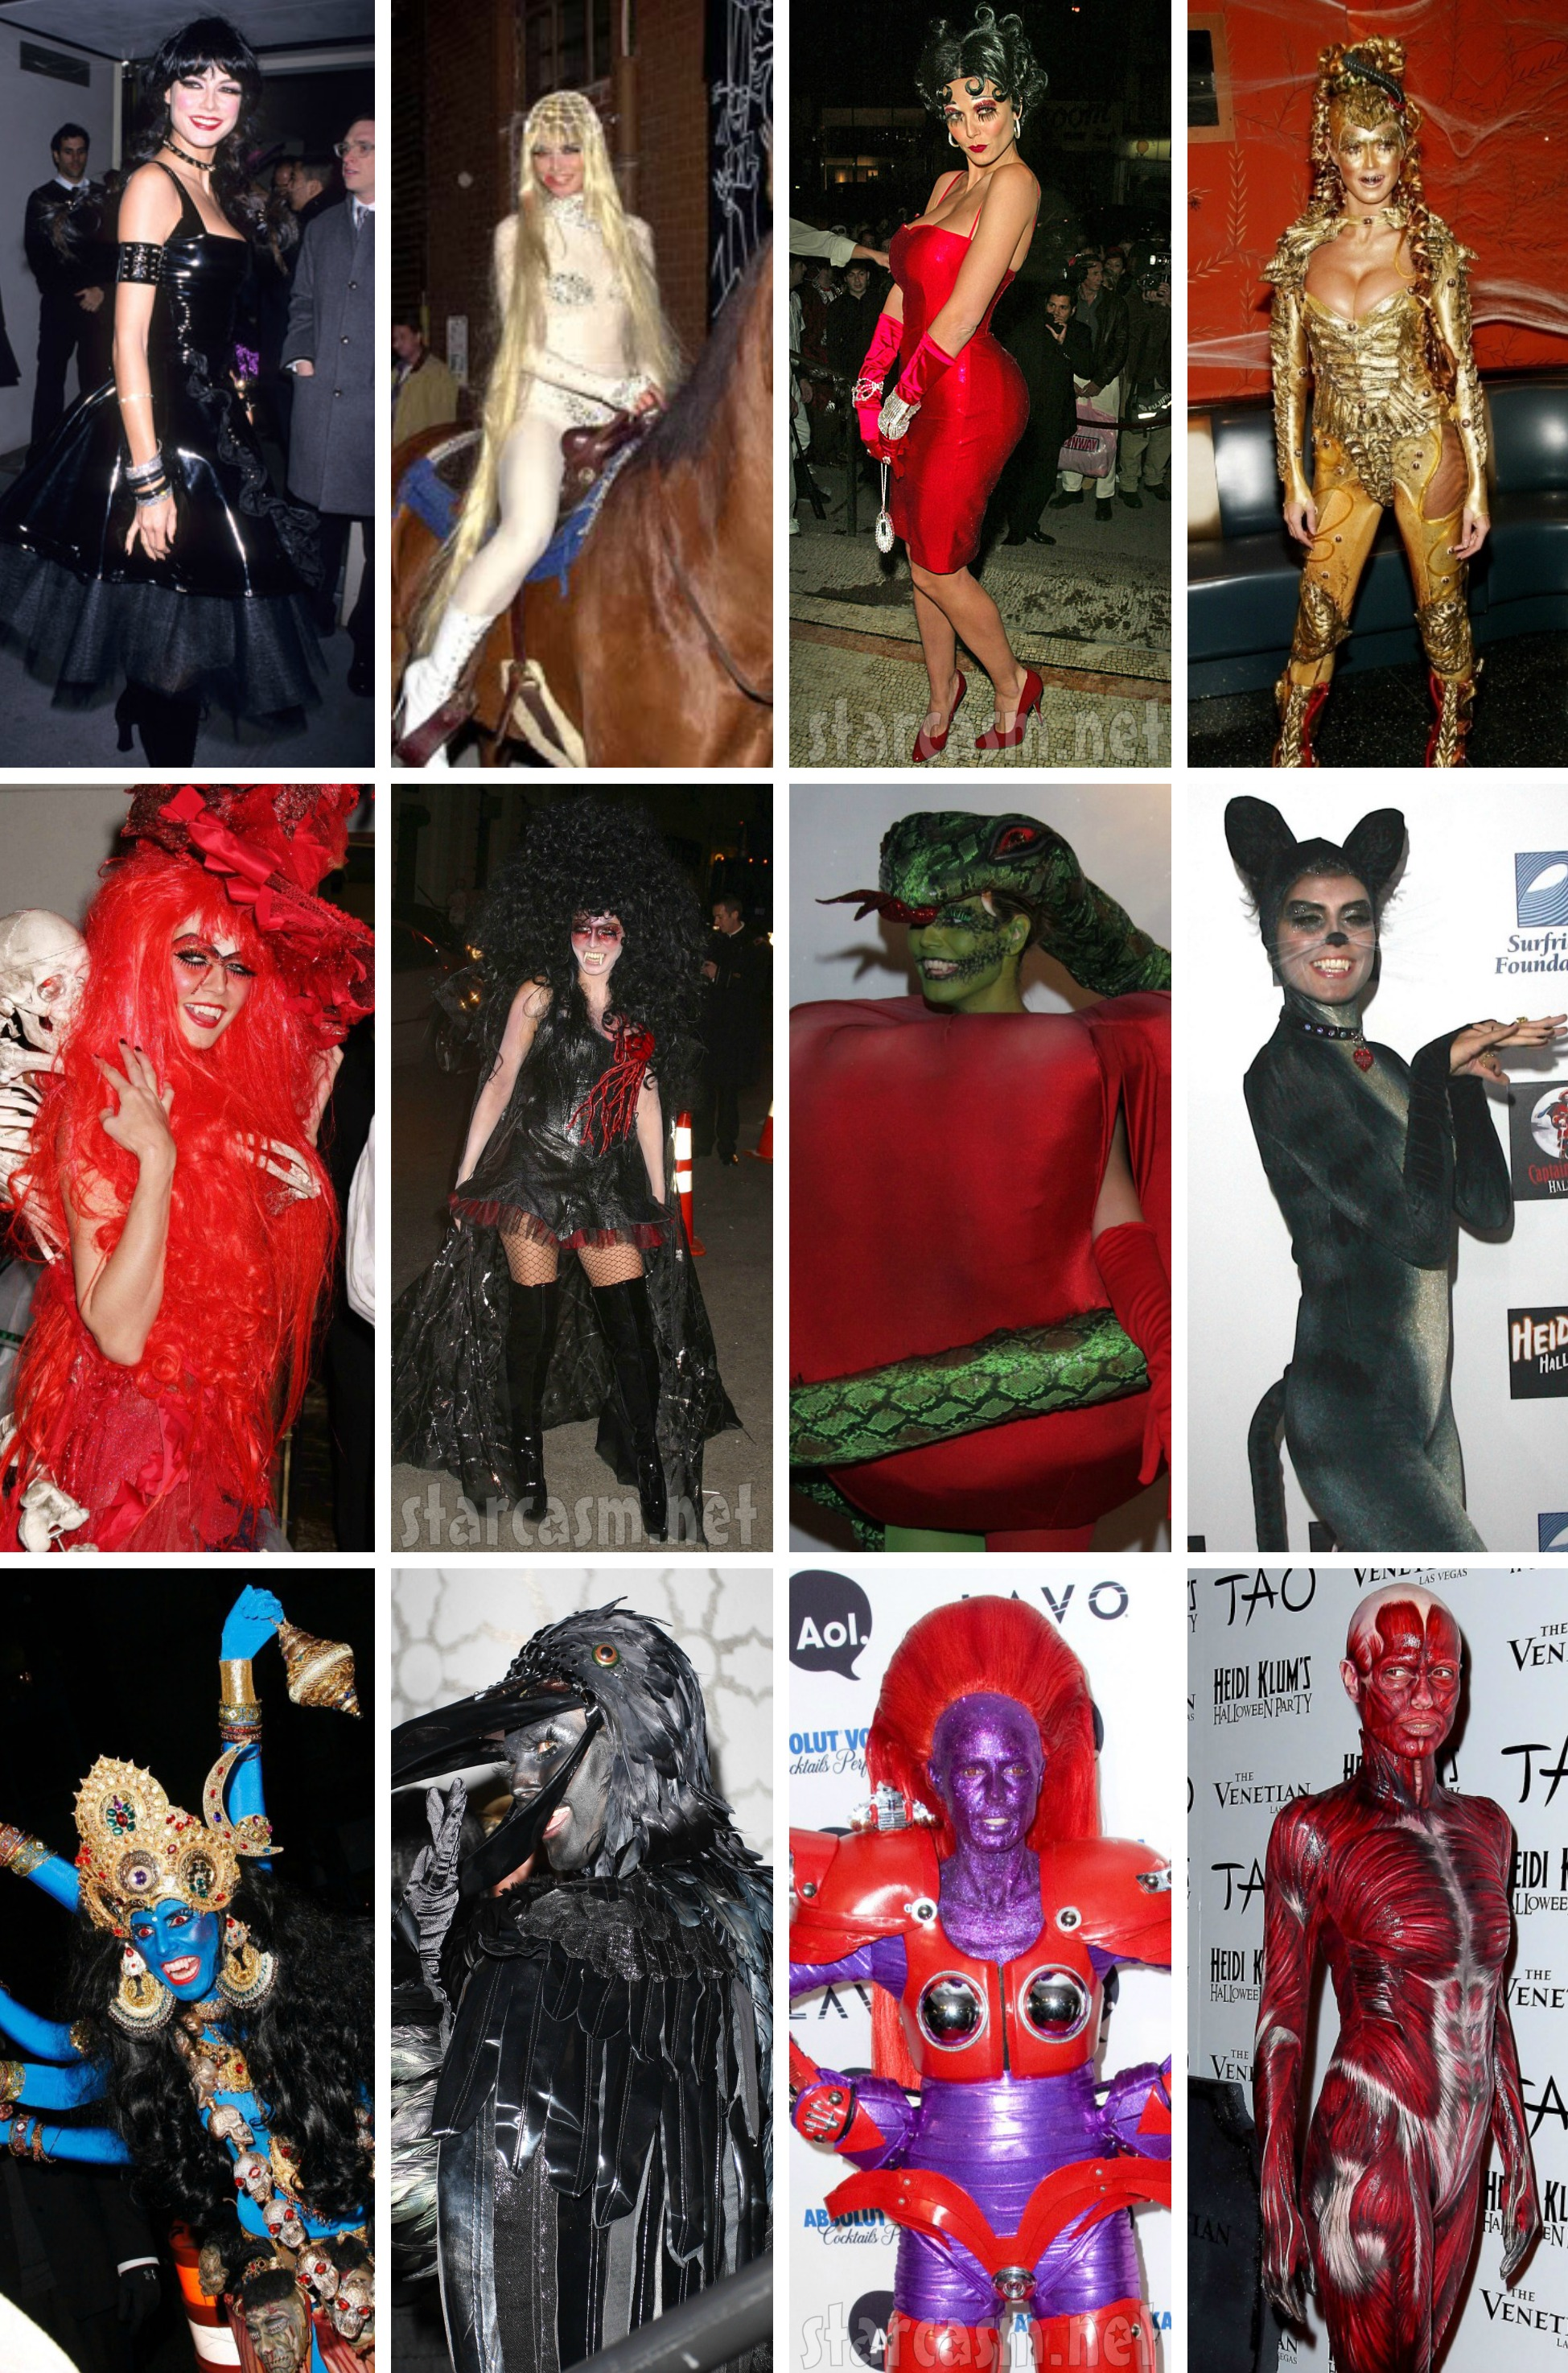 photos heidi klum's halloween costumes from 2000-2012